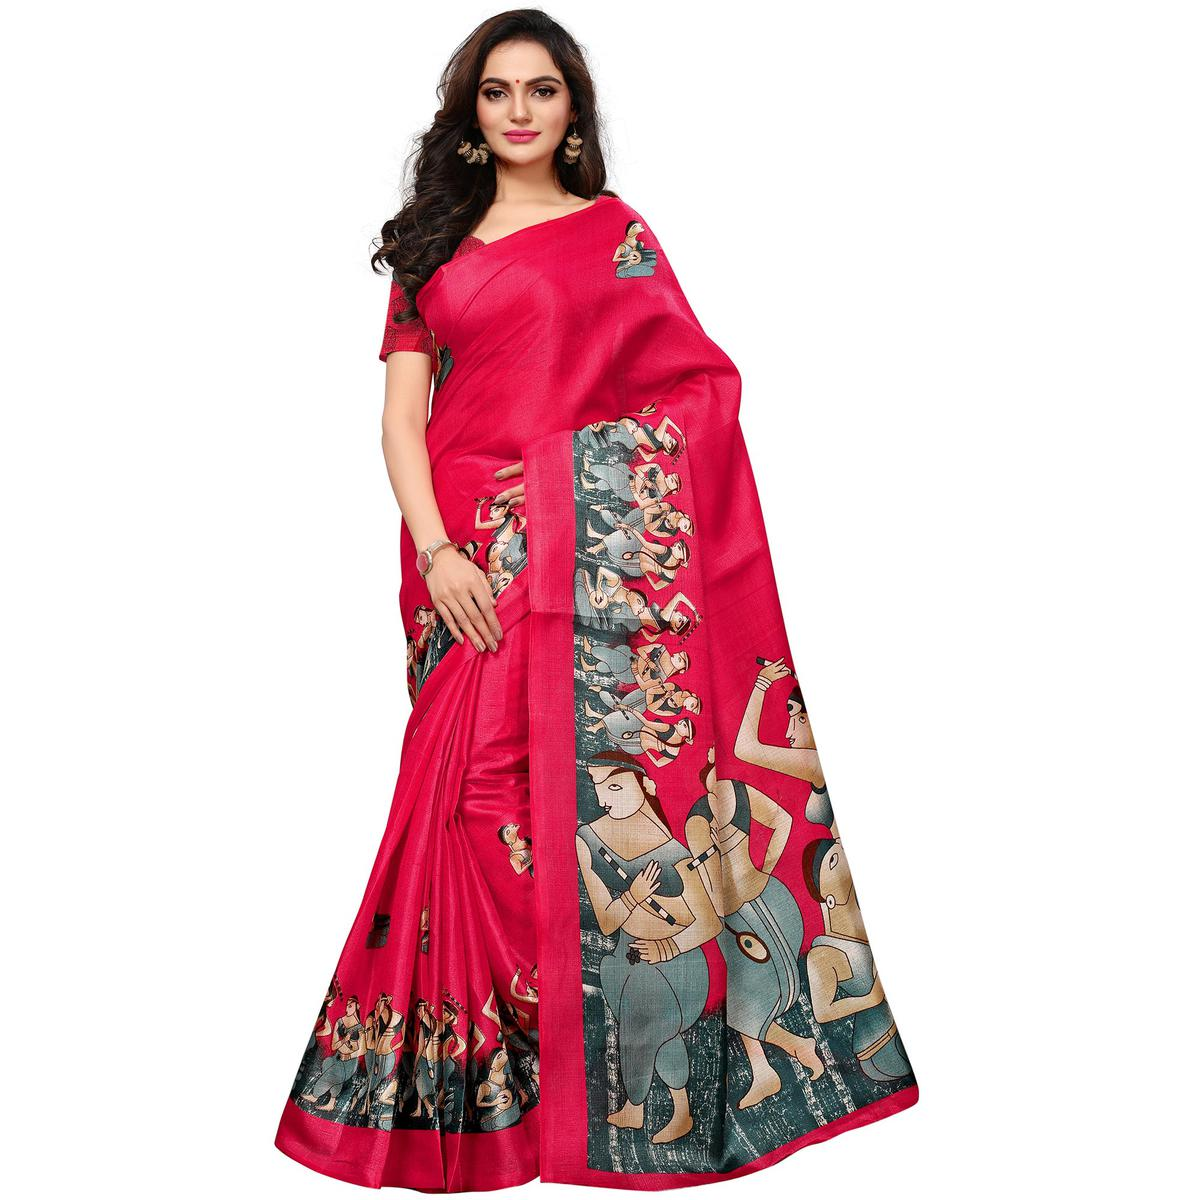 Engrossing Pink Colored Casual Printed Khadi Silk Saree